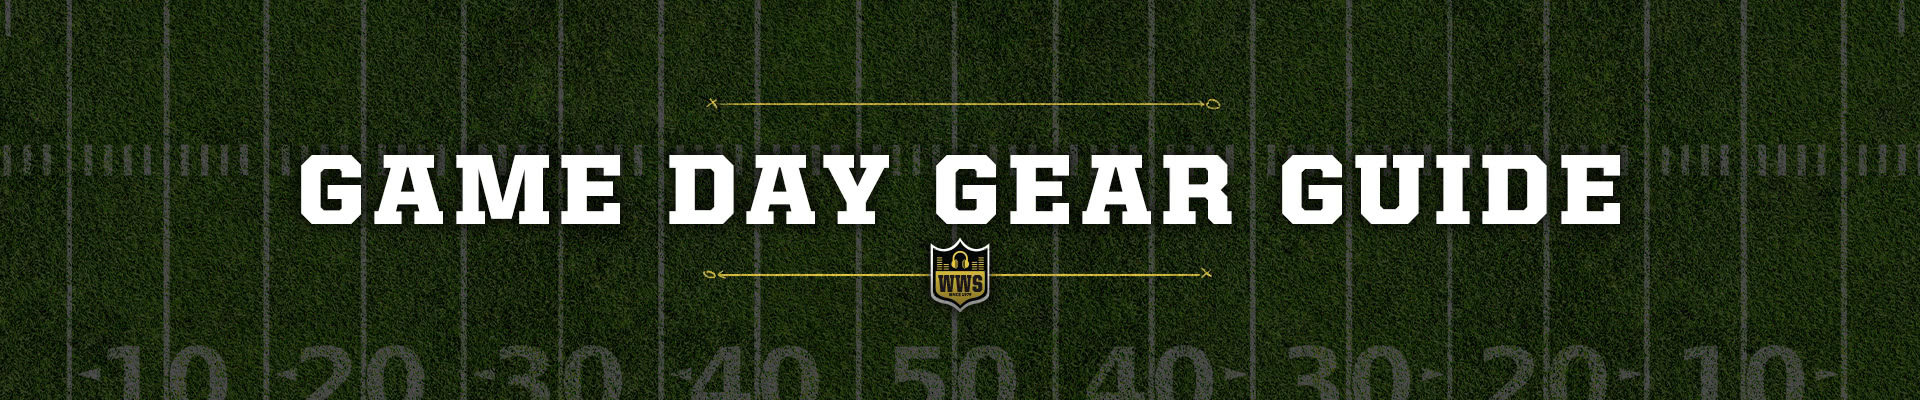 Football game day audio and video buying guide